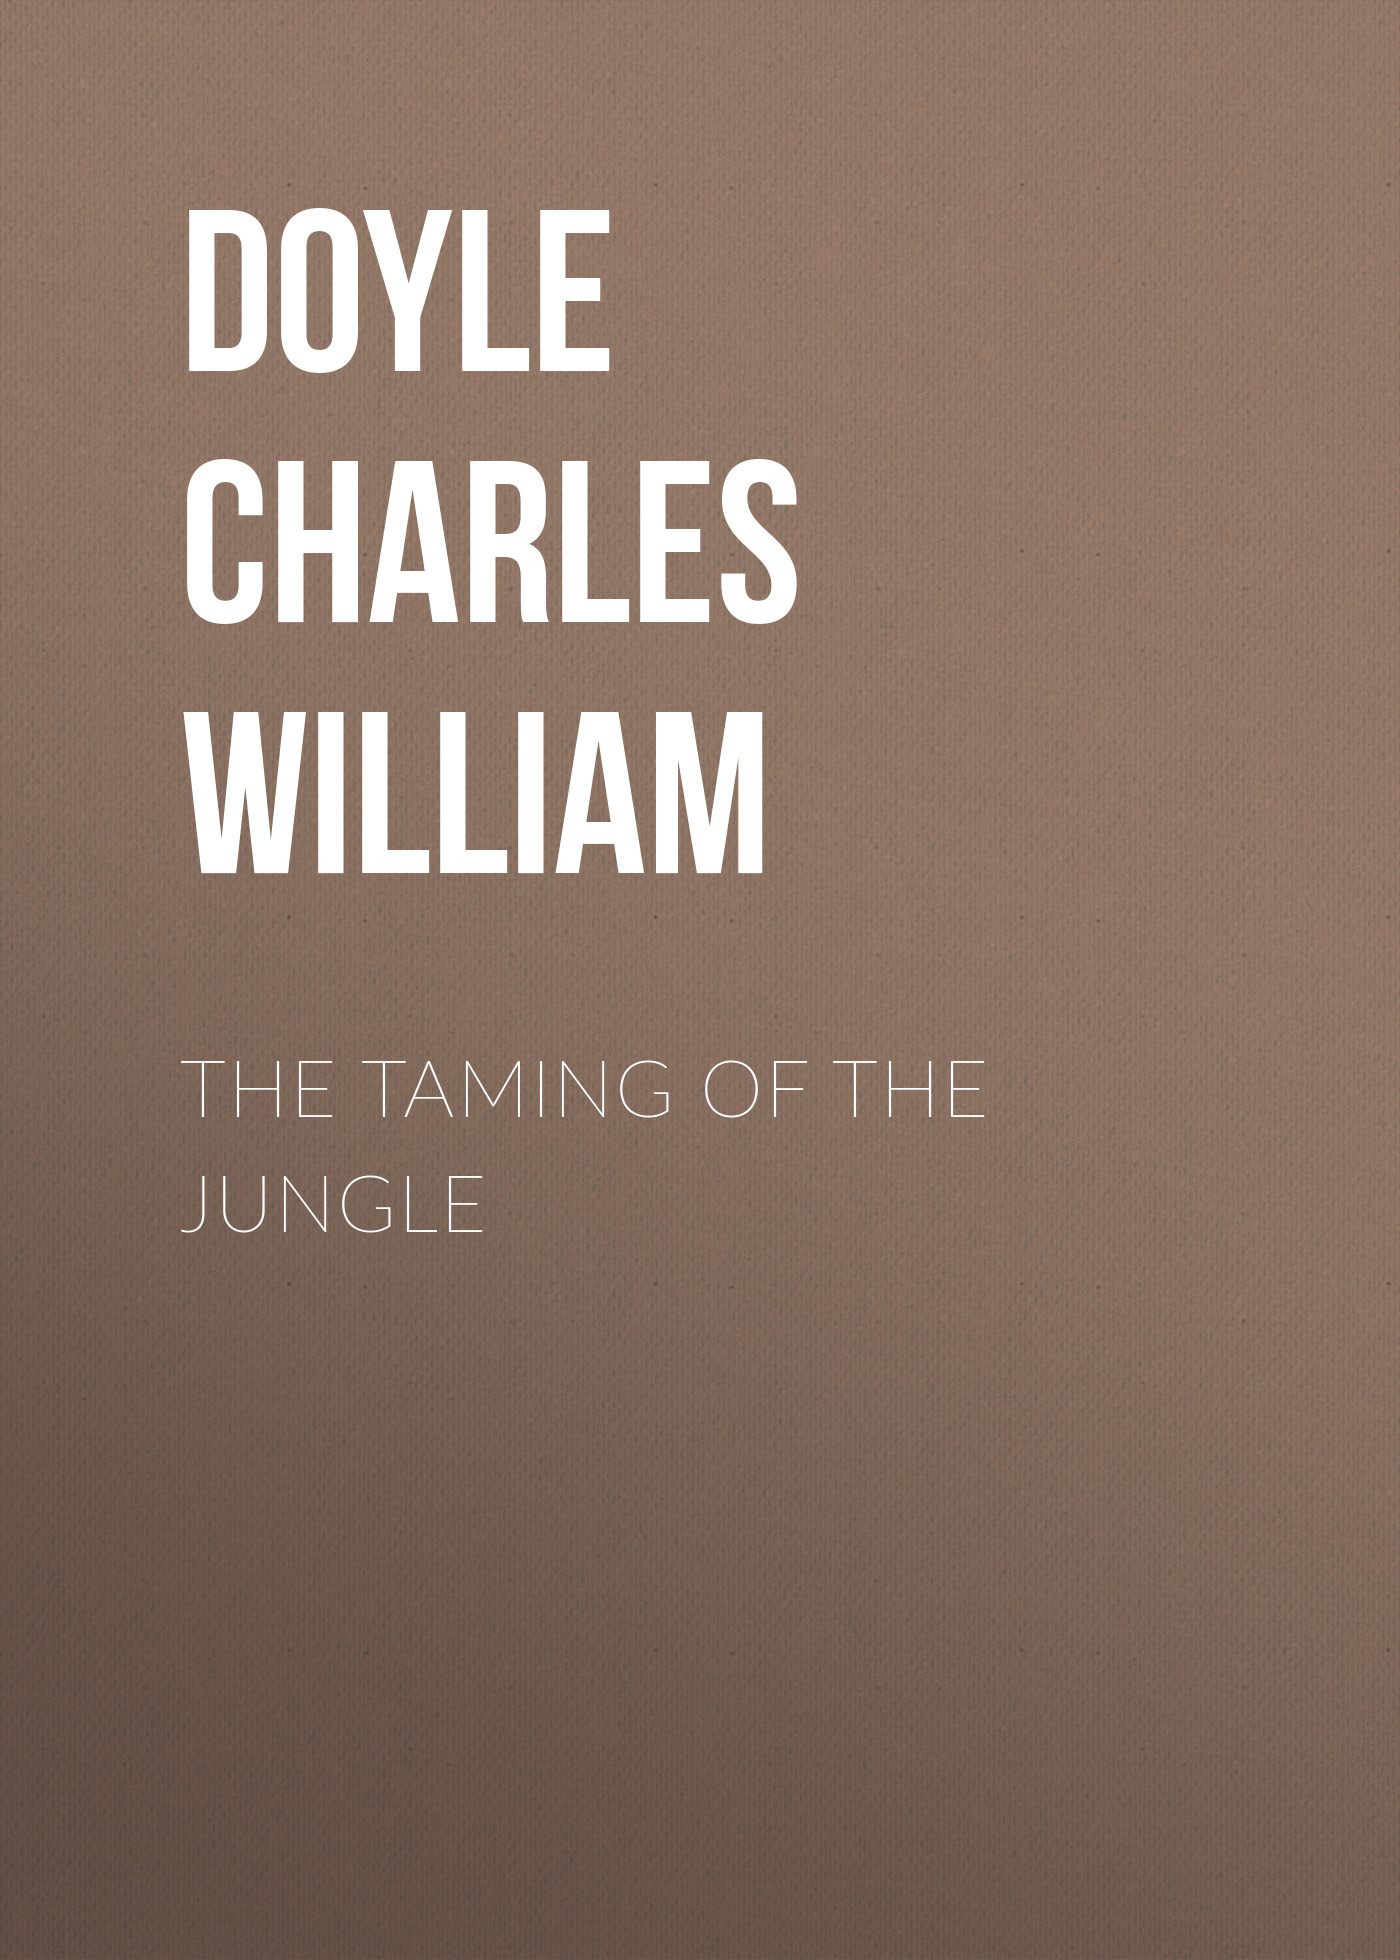 Doyle Charles William The Taming of the Jungle doyle arthur conan the crime of the congo